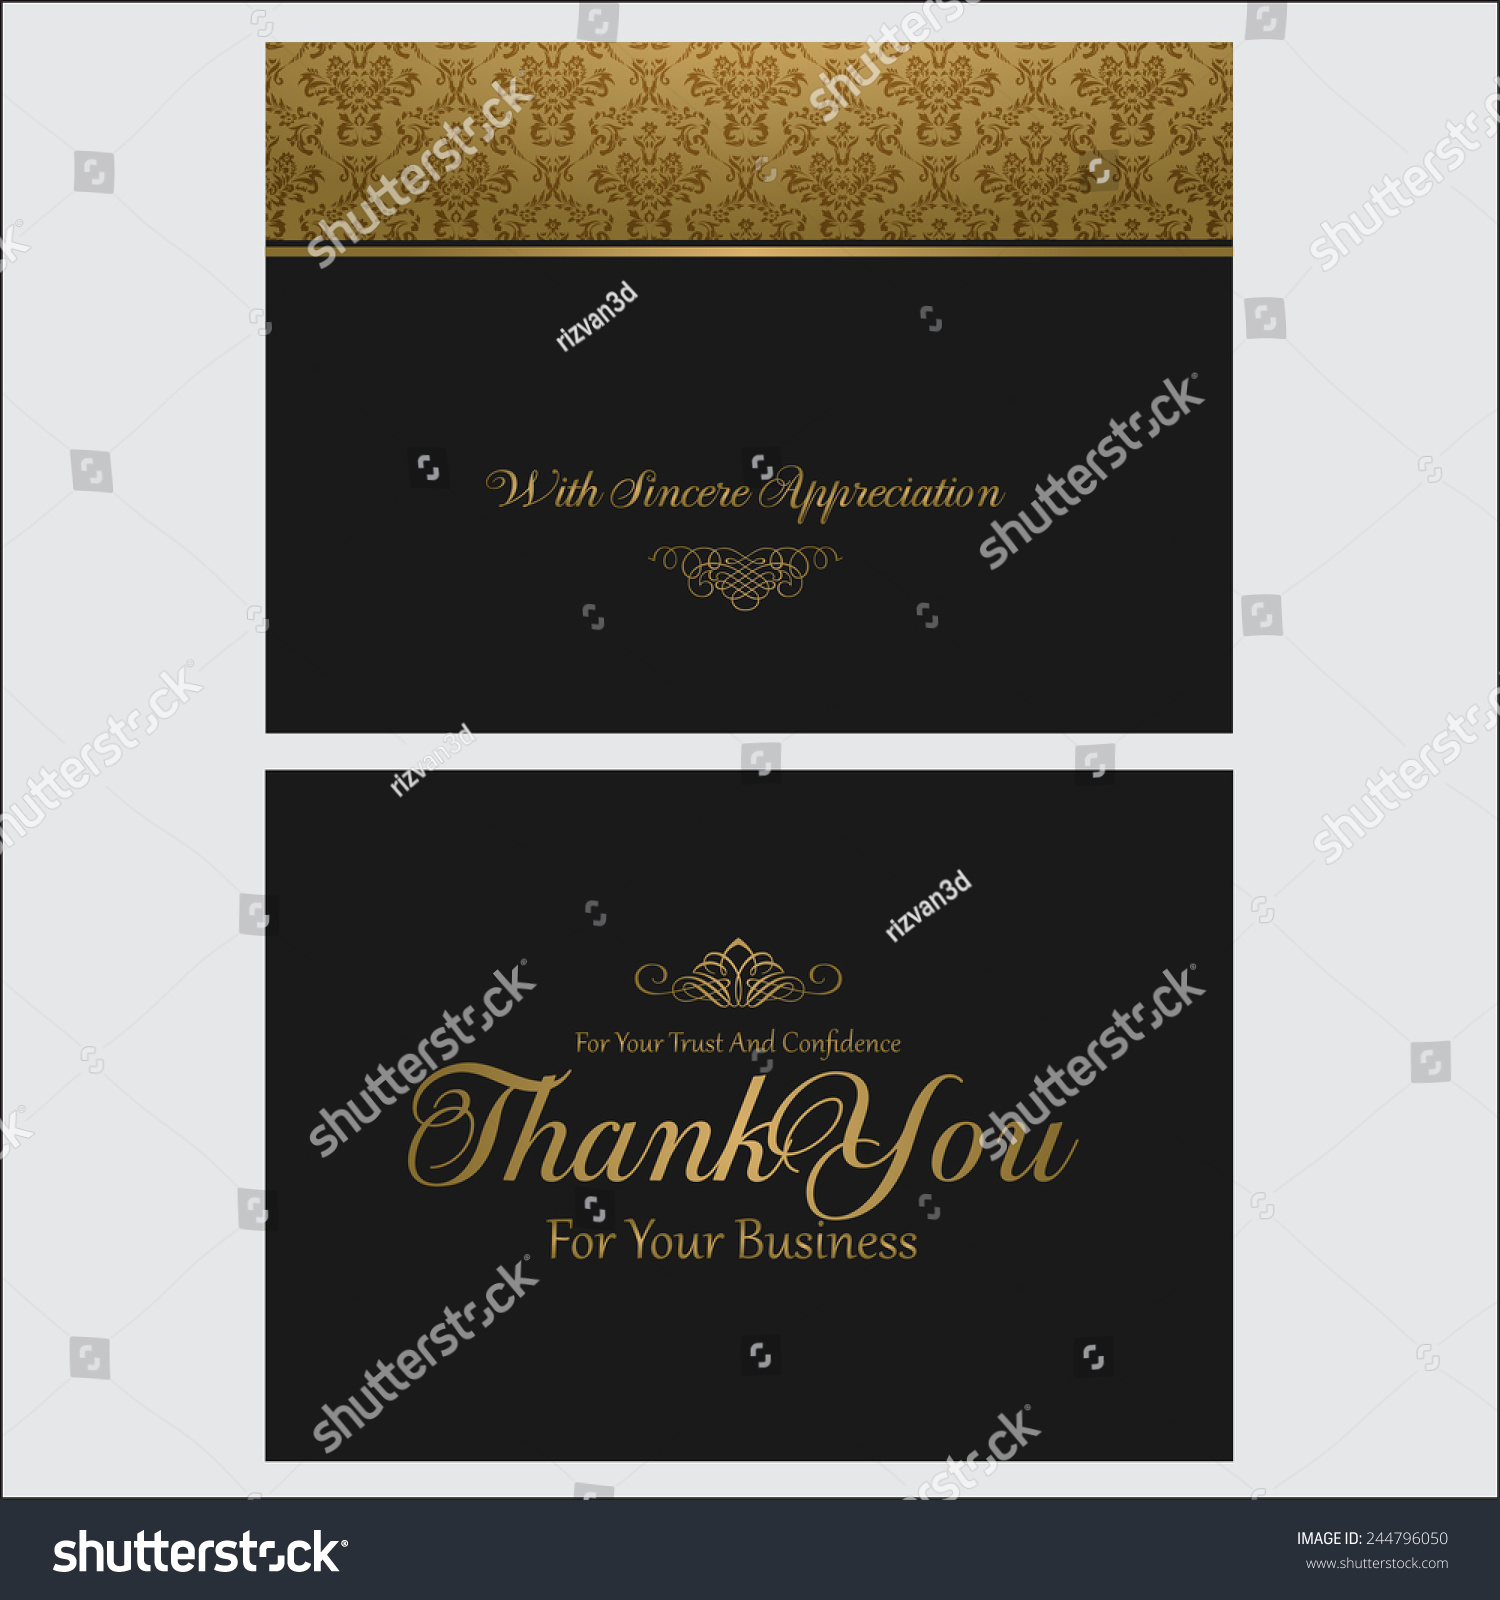 Thank You You Business Card Stock Vector 244796050 - Shutterstock